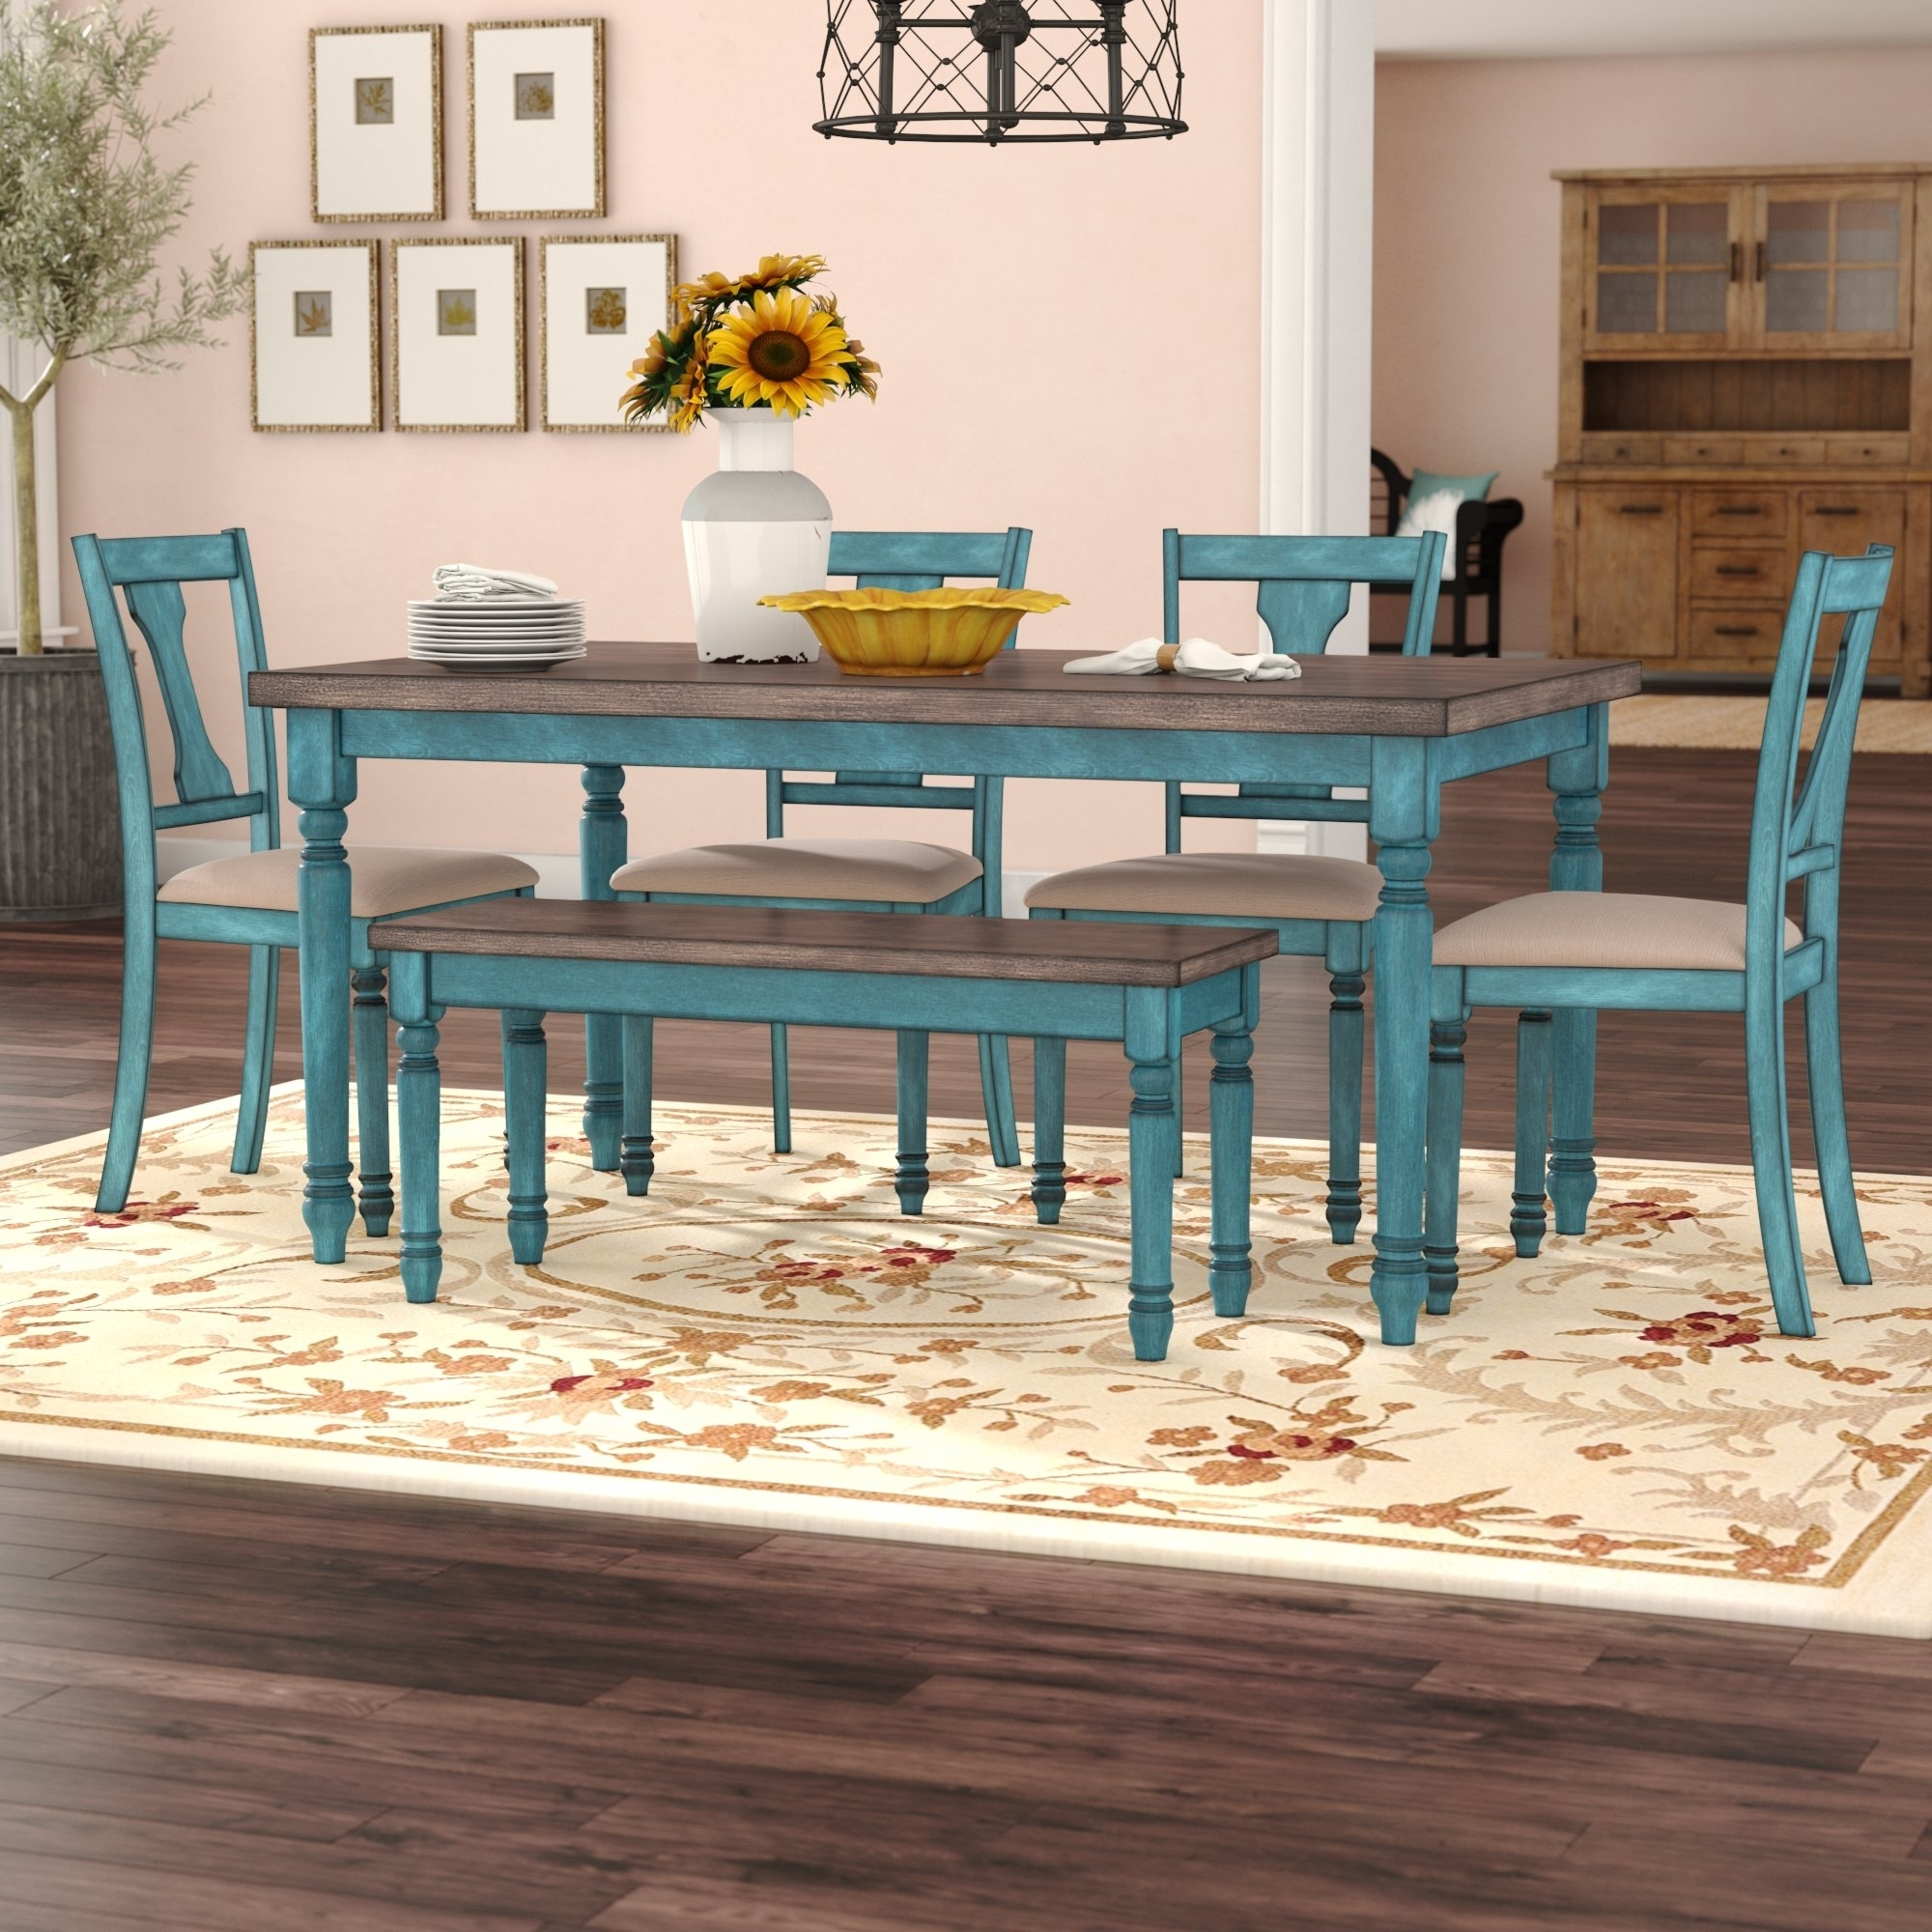 August Grove Scarlet 6 Piece Dining Set & Reviews | Wayfair With Regard To Current Marbled Axton Sideboards (View 19 of 20)